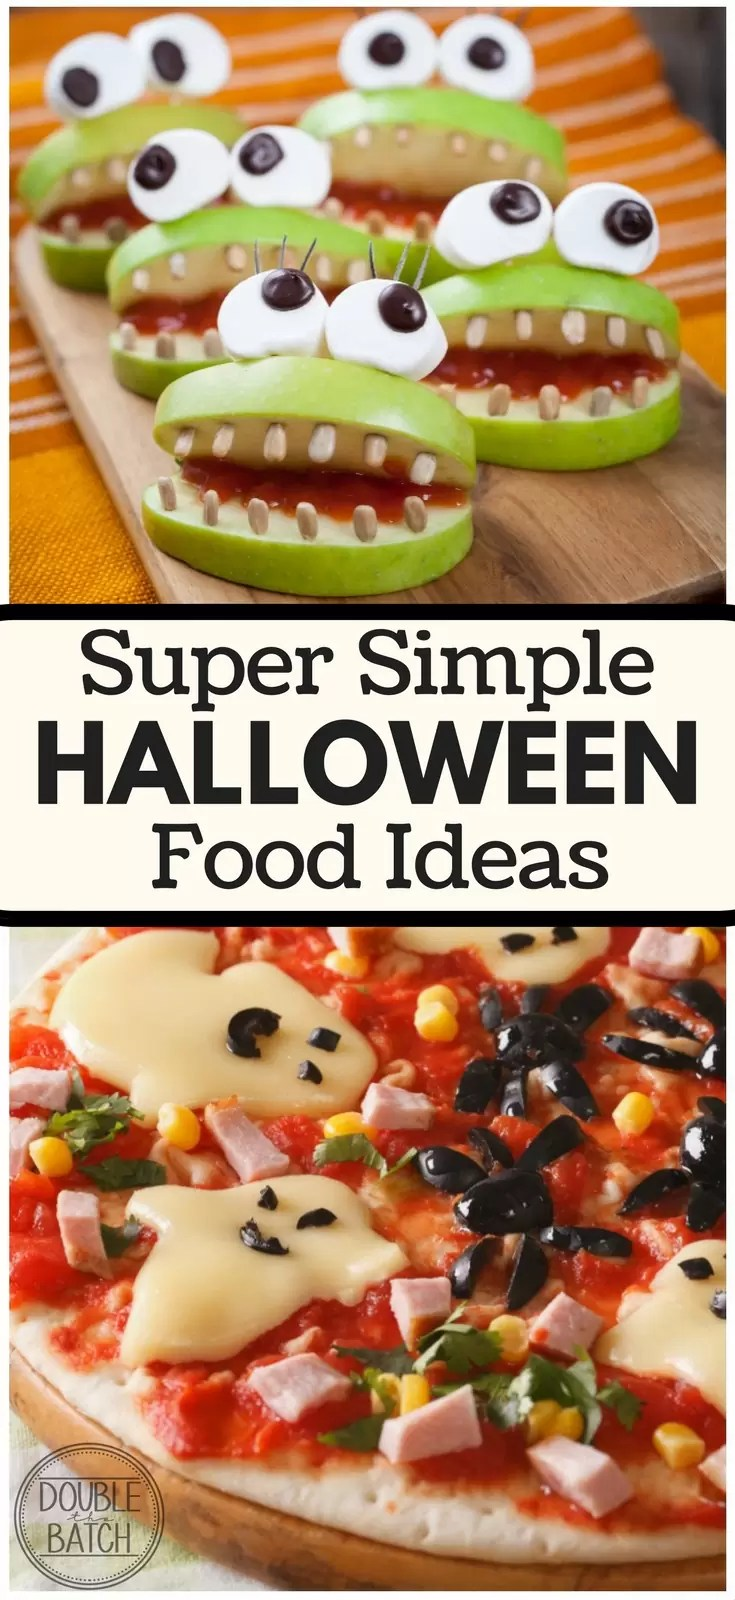 Loving these simple Halloween food ideas! Sanity saved, bellies filled, happy memories made!